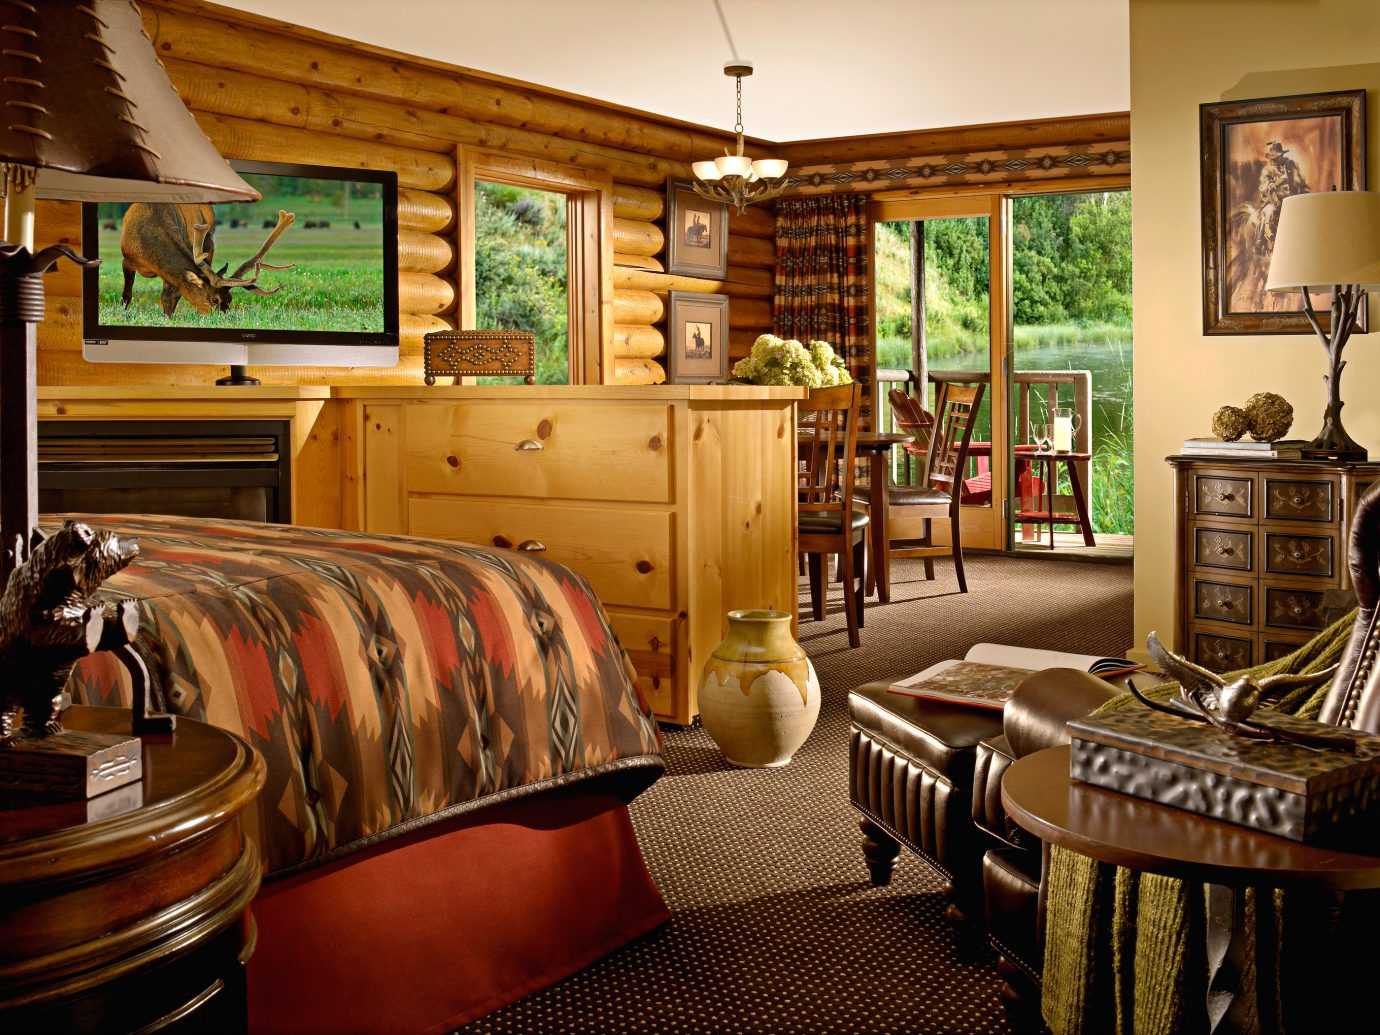 Adventure Bedroom Boat Budget Country Family Forest Lake Lodge Mountains Outdoor Activities Outdoors River Rustic indoor room property Living chair dining room living room estate home interior design real estate furniture area several